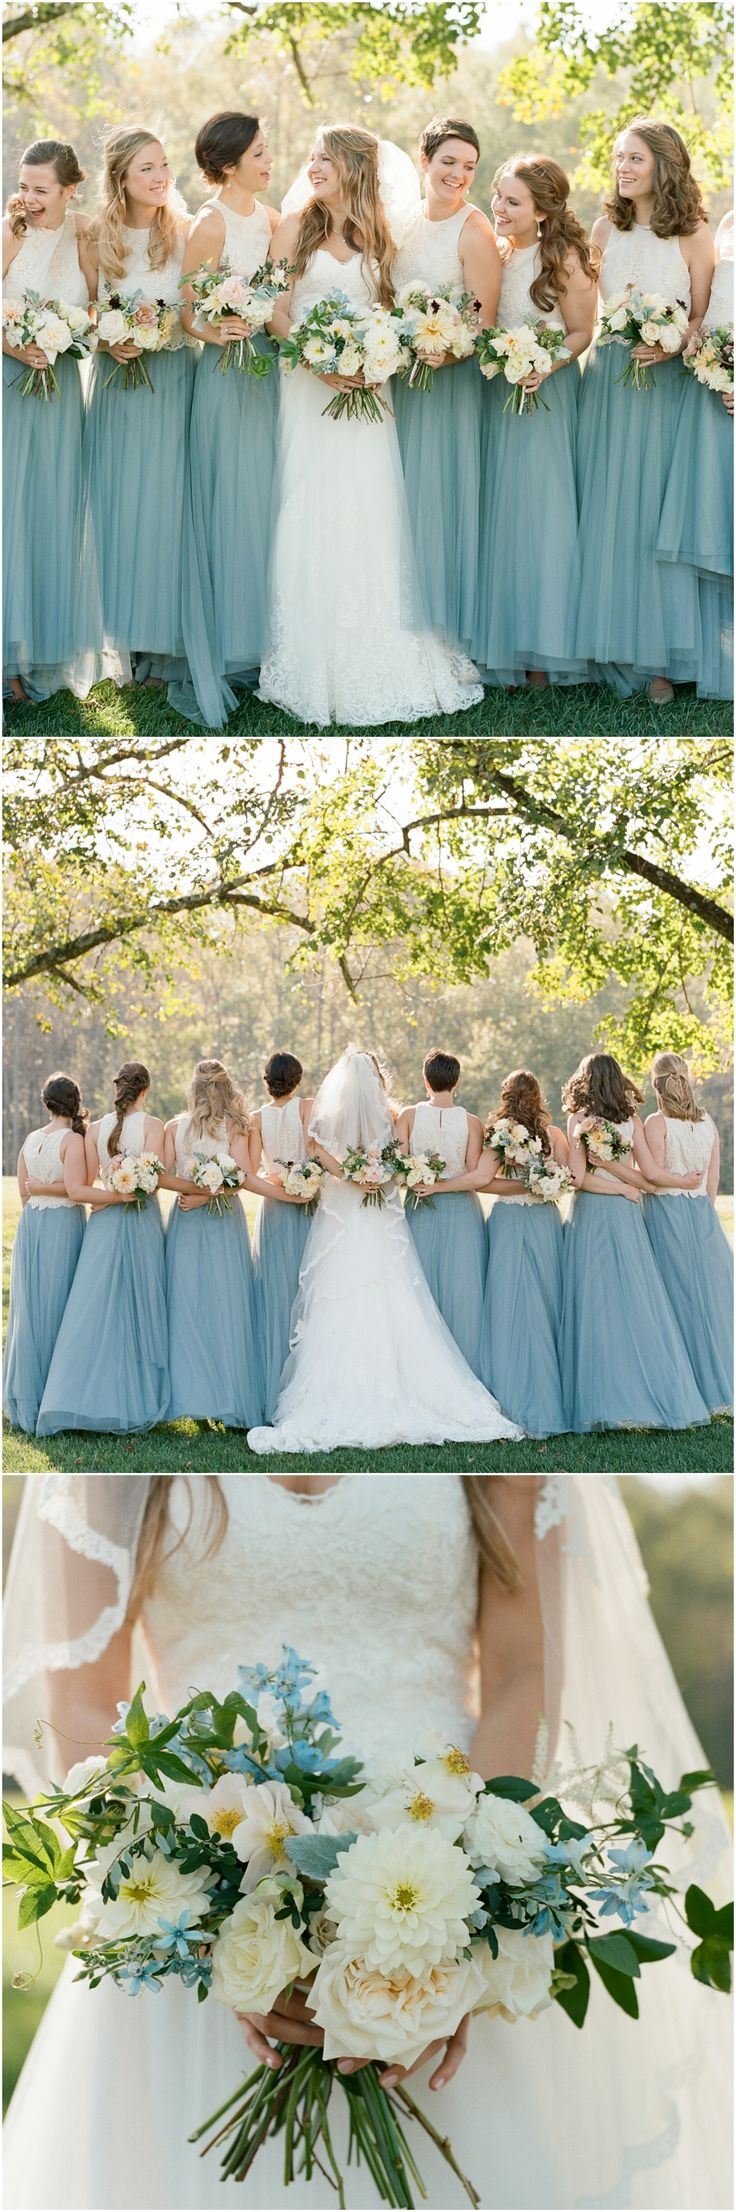 @BHLDN bridesmaid dresses, bridal separates, blue skirt, spring wedding fashion // Elisa Bricker